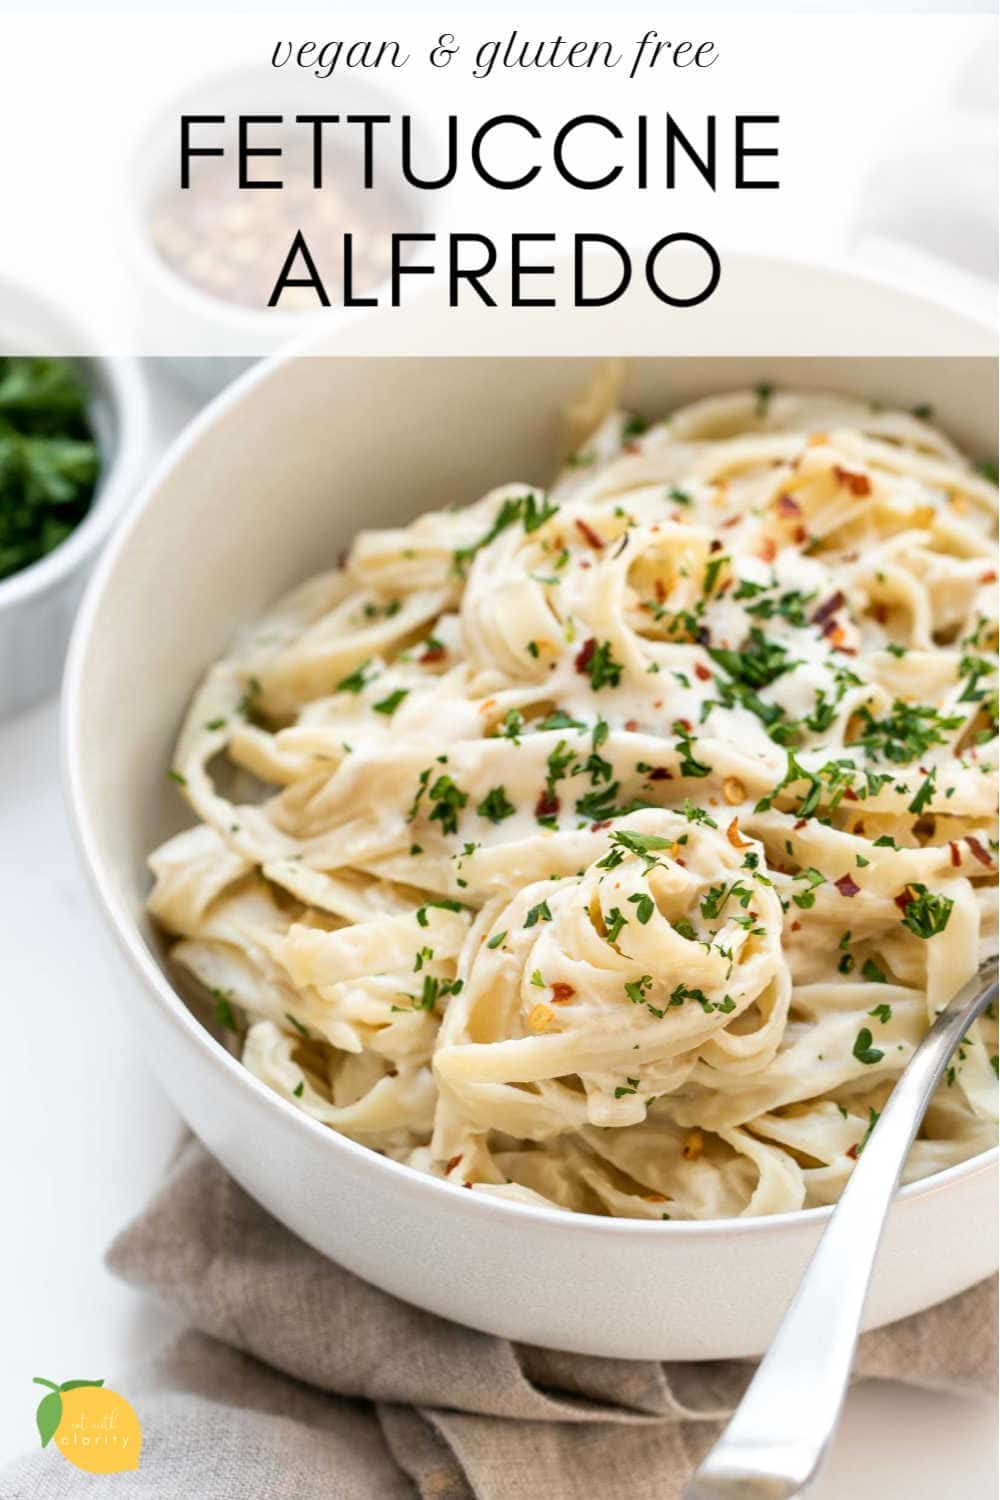 This Vegan Fettuccine Alfredo Is Your New Favorite Pasta Recipe Creamy Rich And Completely Dairy Fr In 2020 Favorite Pasta Recipes Vegan Pasta Recipes Alfredo Sauce